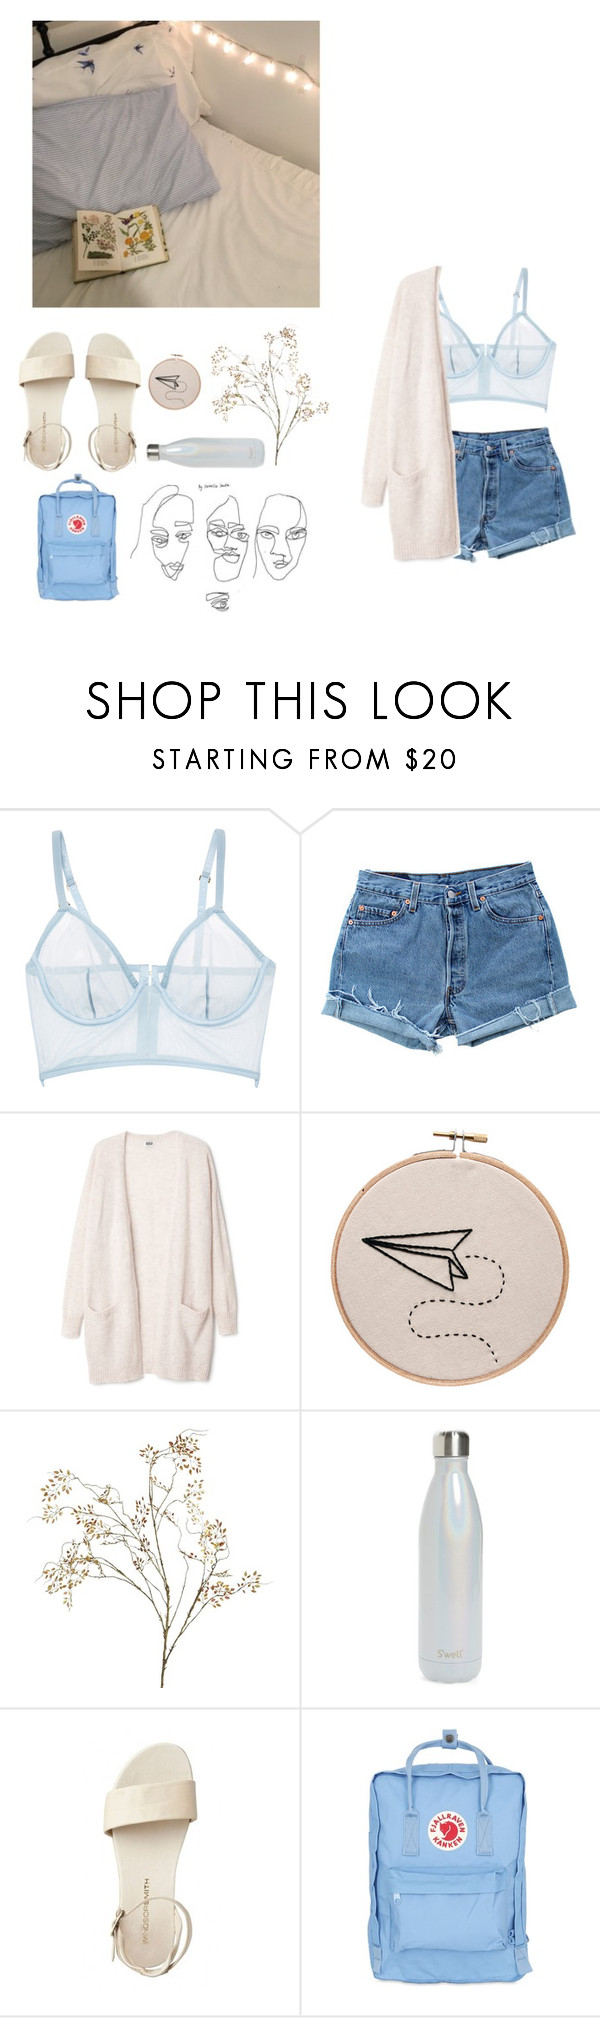 """""""a million faces"""" by rejectedminds ❤ liked on Polyvore featuring GET LOST, La Perla, Levi's, Pier 1 Imports, S'well and Fjällräven"""